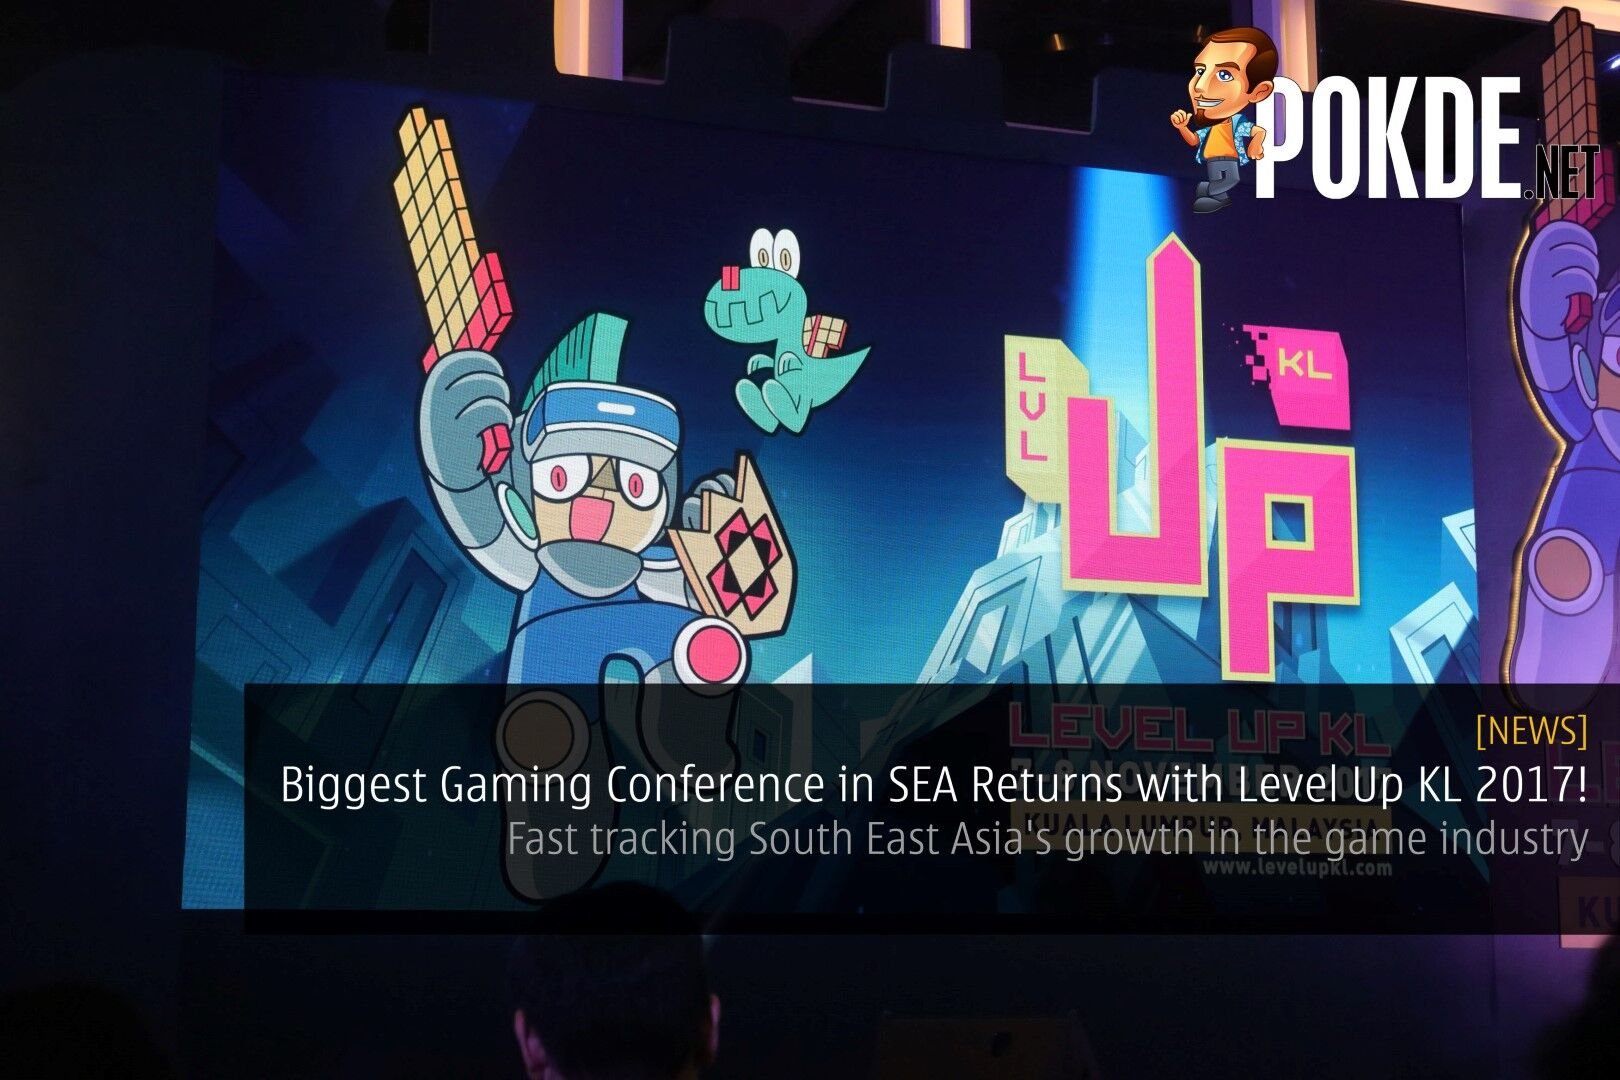 Biggest Gaming Conference in SEA Returns with Level Up KL 2017! - Fast tracking South East Asia's growth in the game industry 29